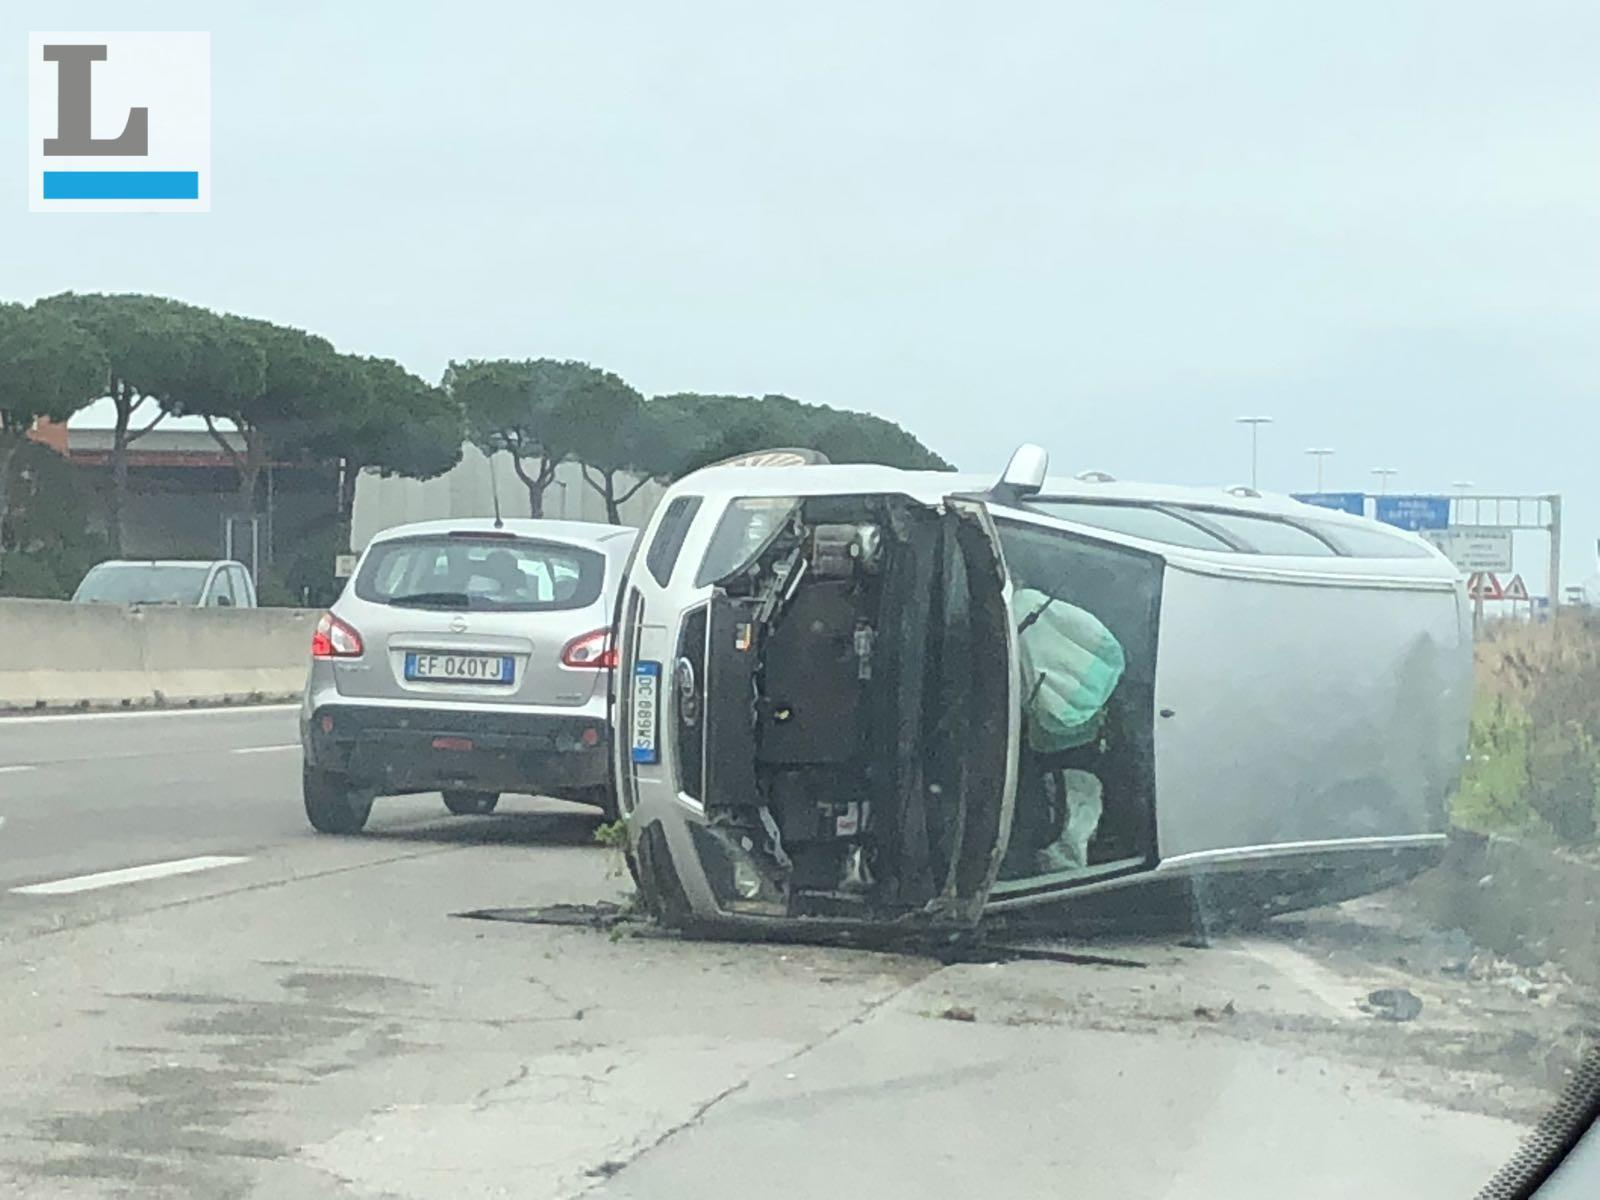 Incidente davanti ad Aprilia 2, una Ford si ribalta sulla carreggiata